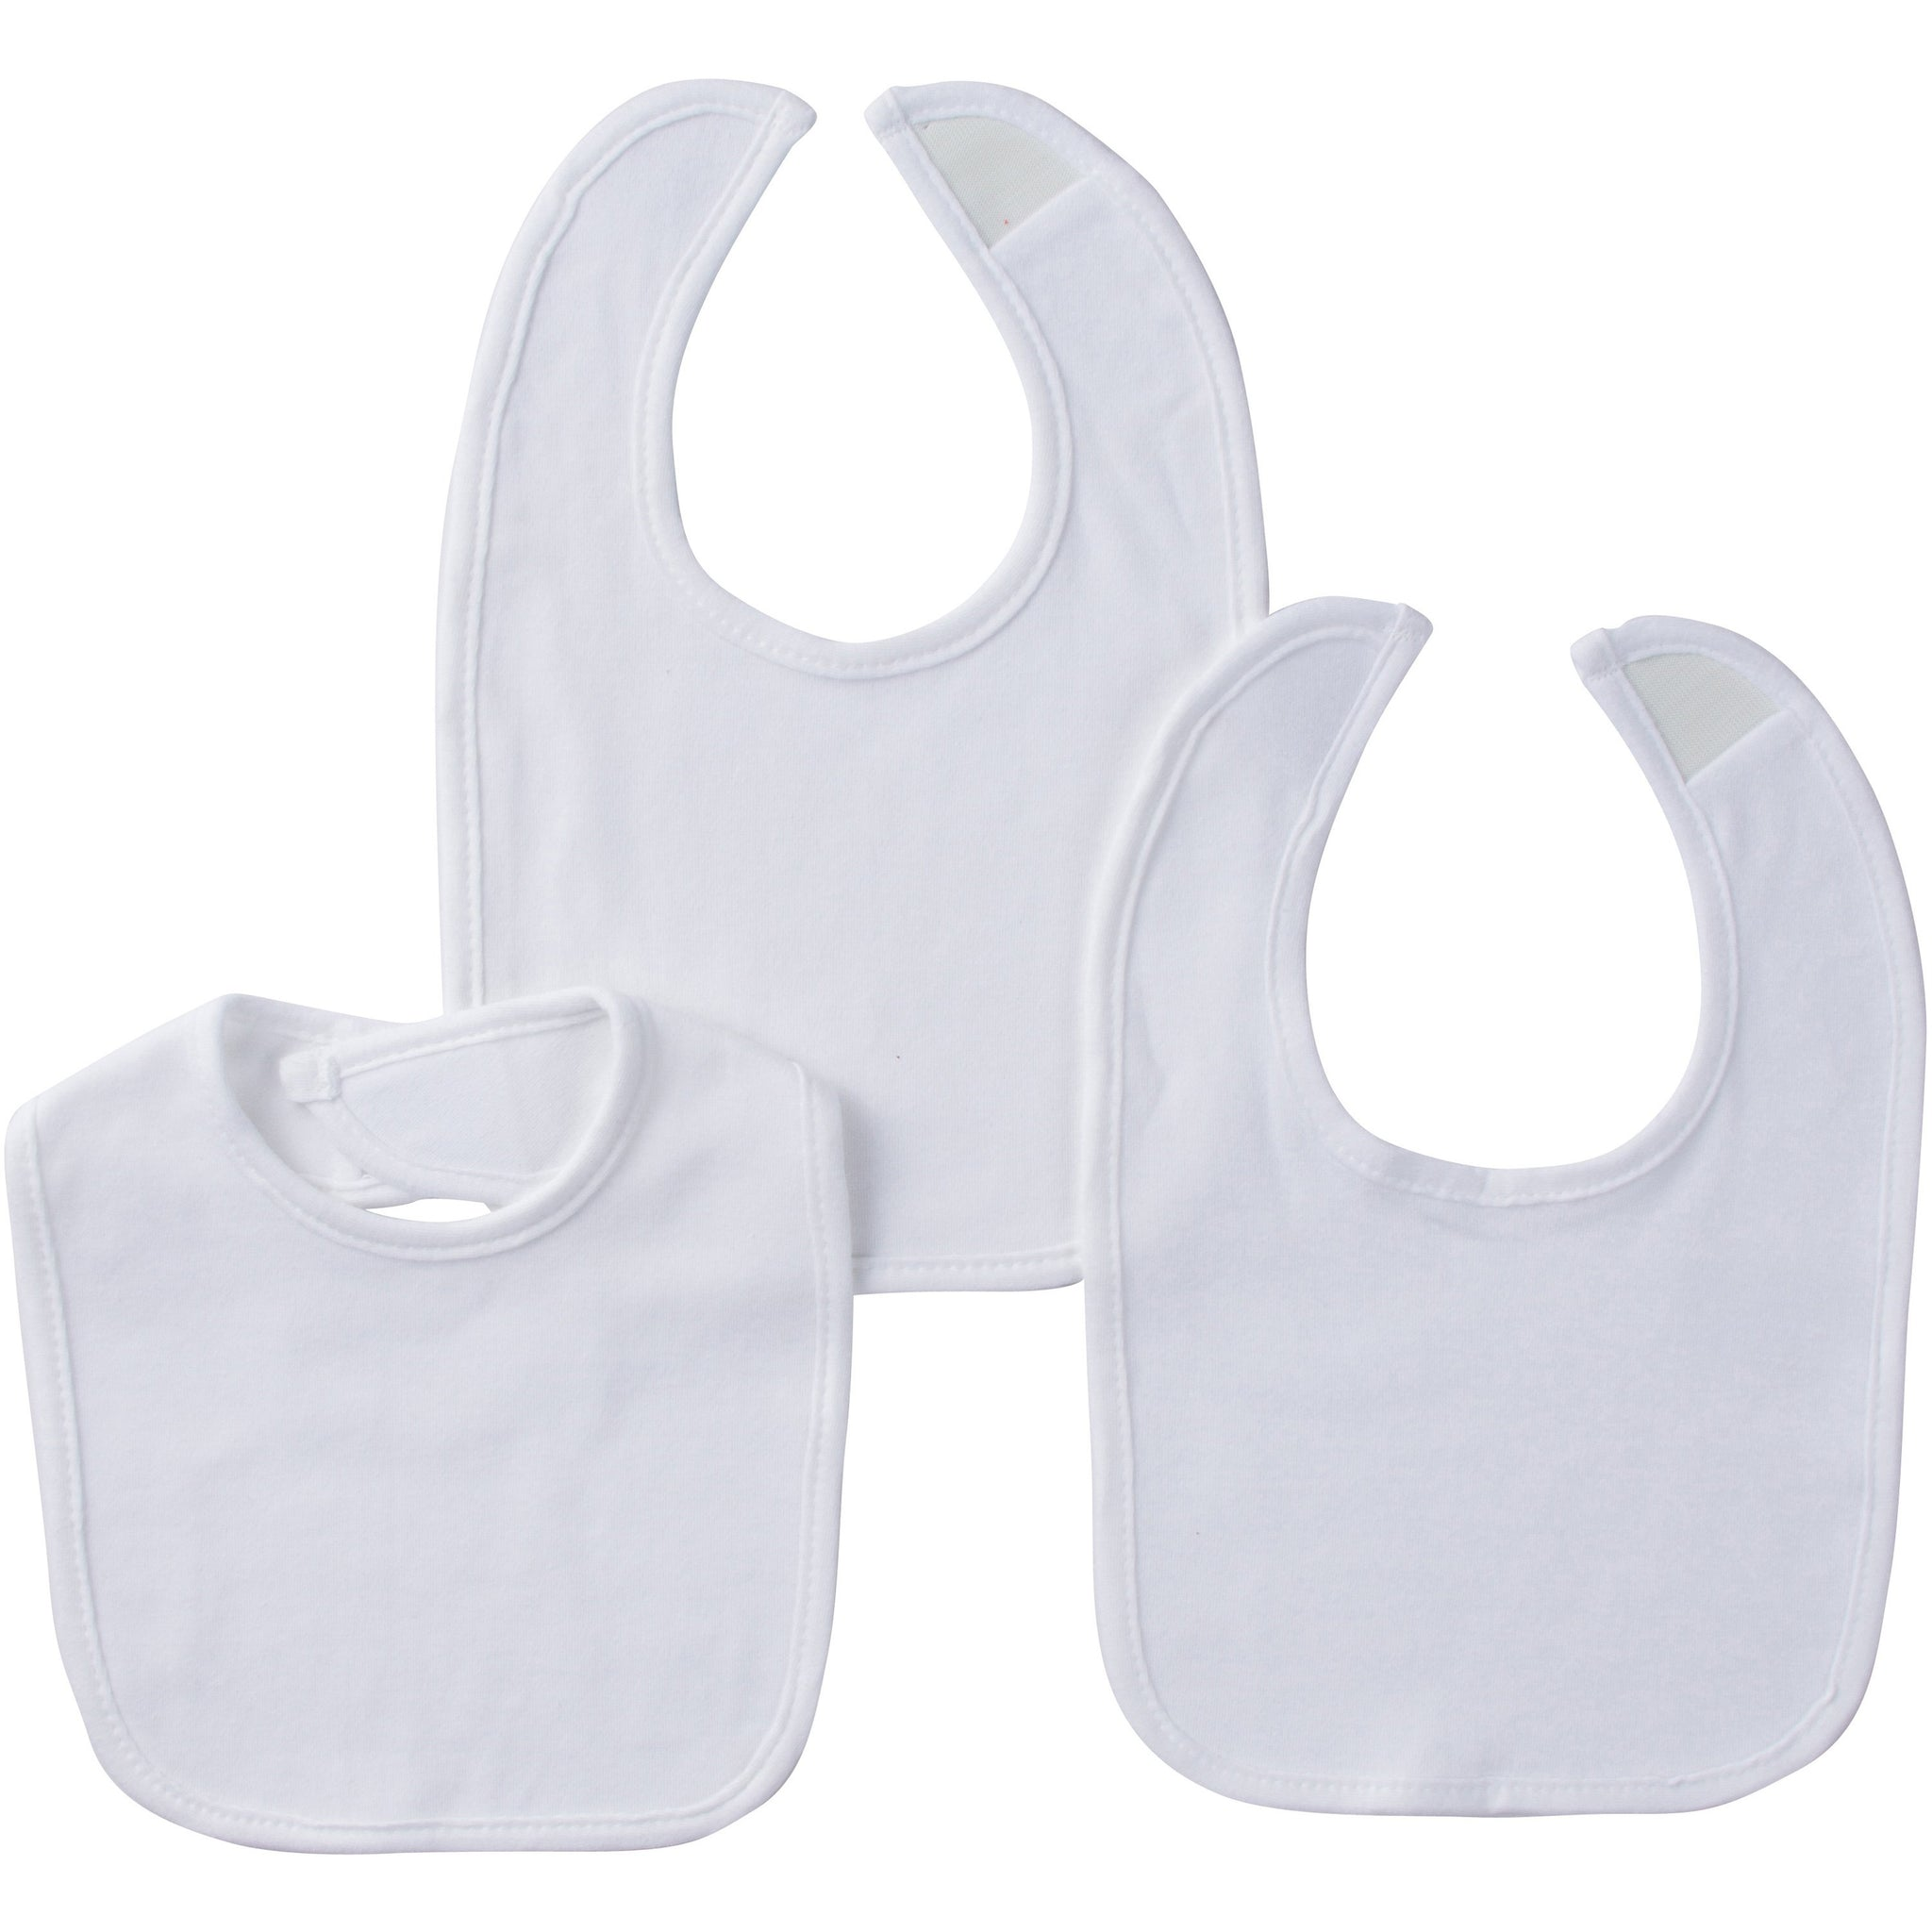 Gerber® 3-Pack White Essential Bibs-Gerber Childrenswear